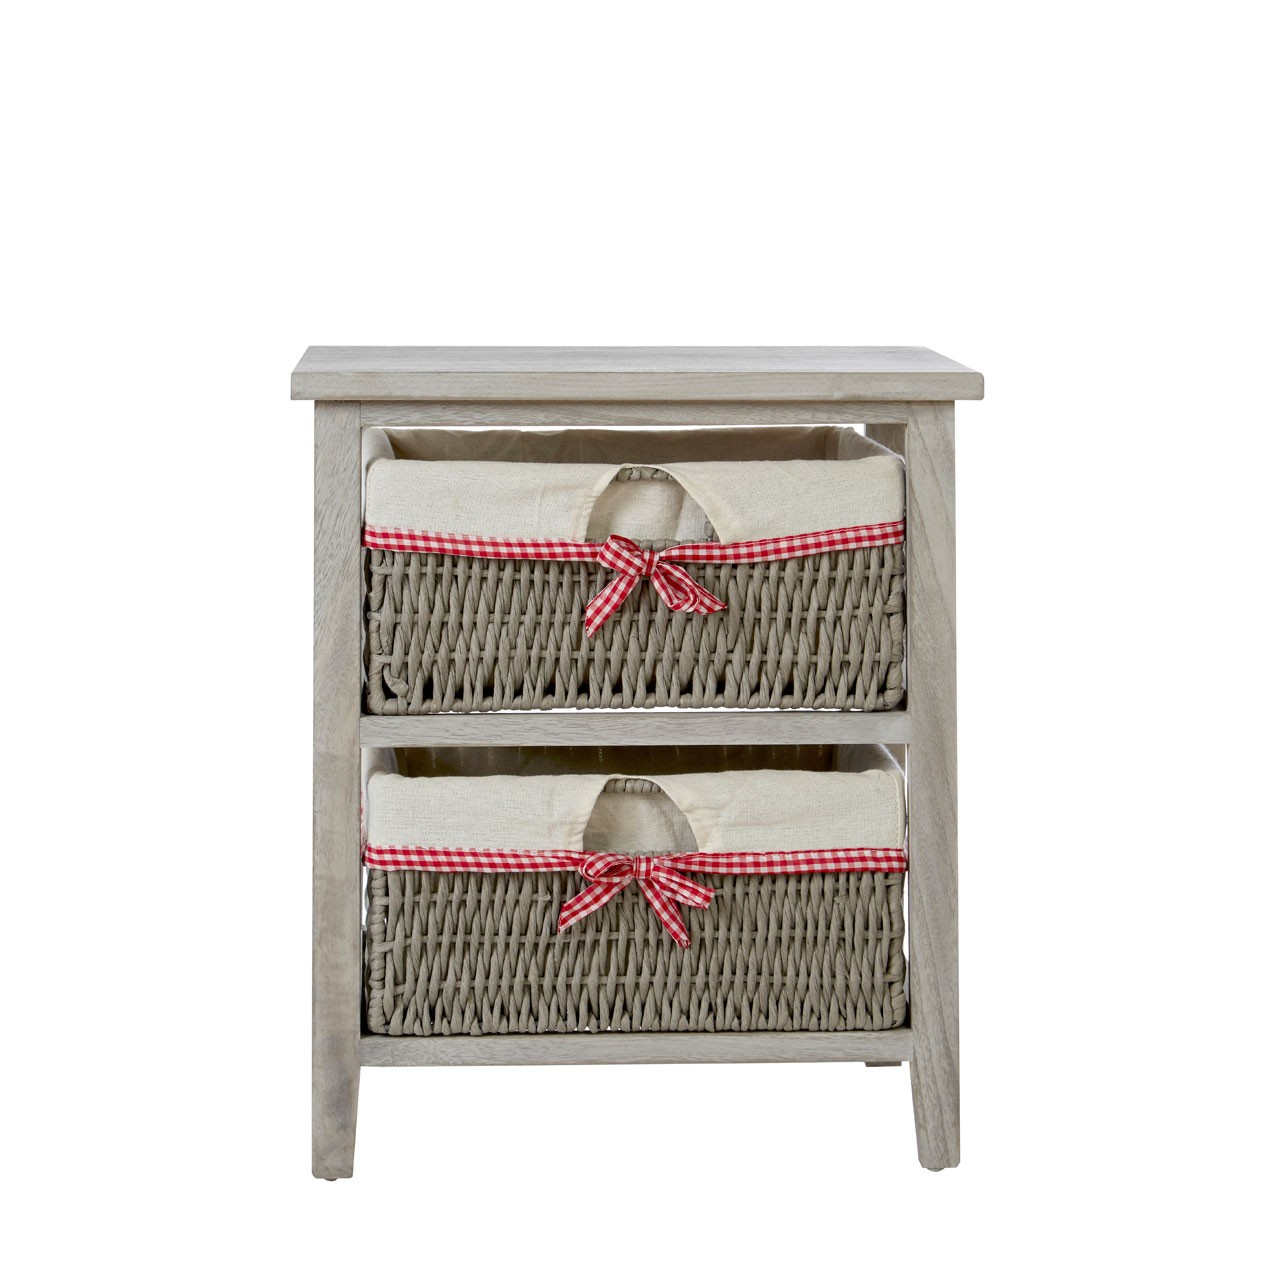 Prime Furnishing Cotswold Storage Unit with 2 Woven Baskets